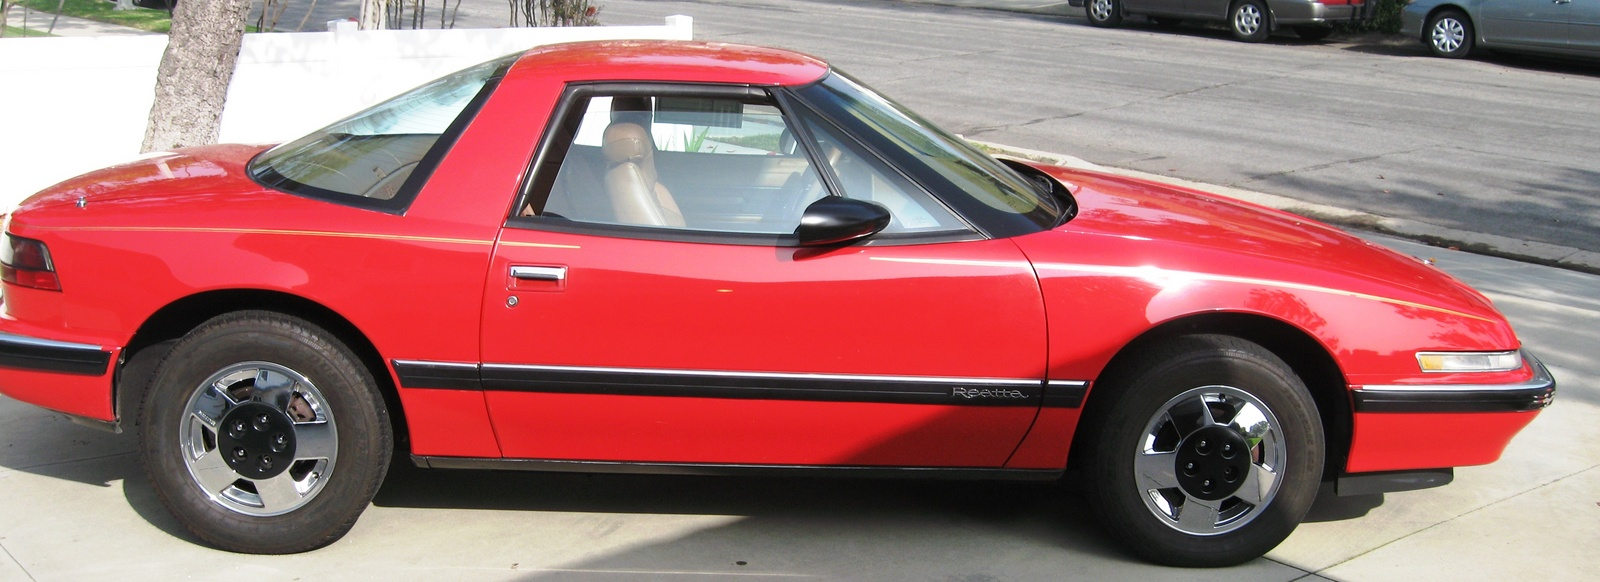 Picture of 1989 Buick Reatta STD Coupe